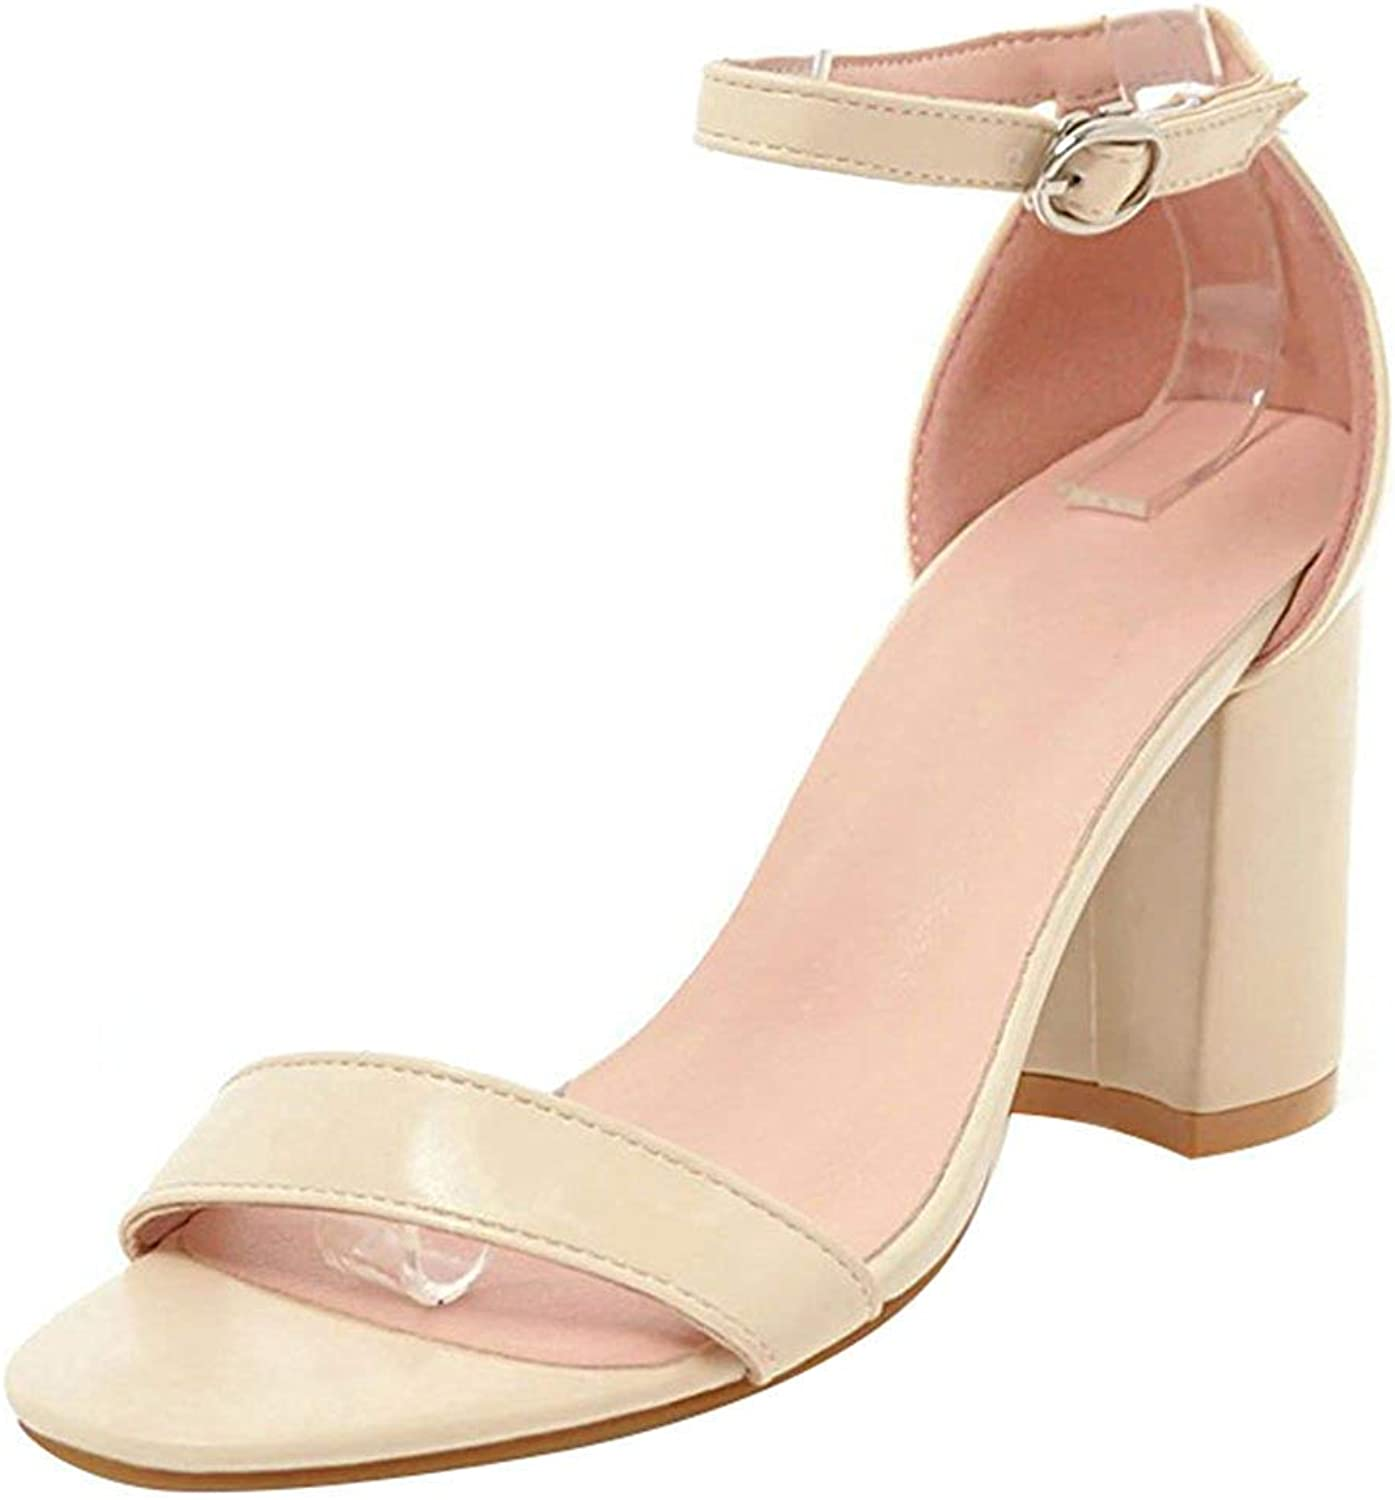 Ghssheh Women's Classic Ankle Strap Work shoes - Open Toe Solid color - Buckle Block High Heels Sandals Beige 4 M US